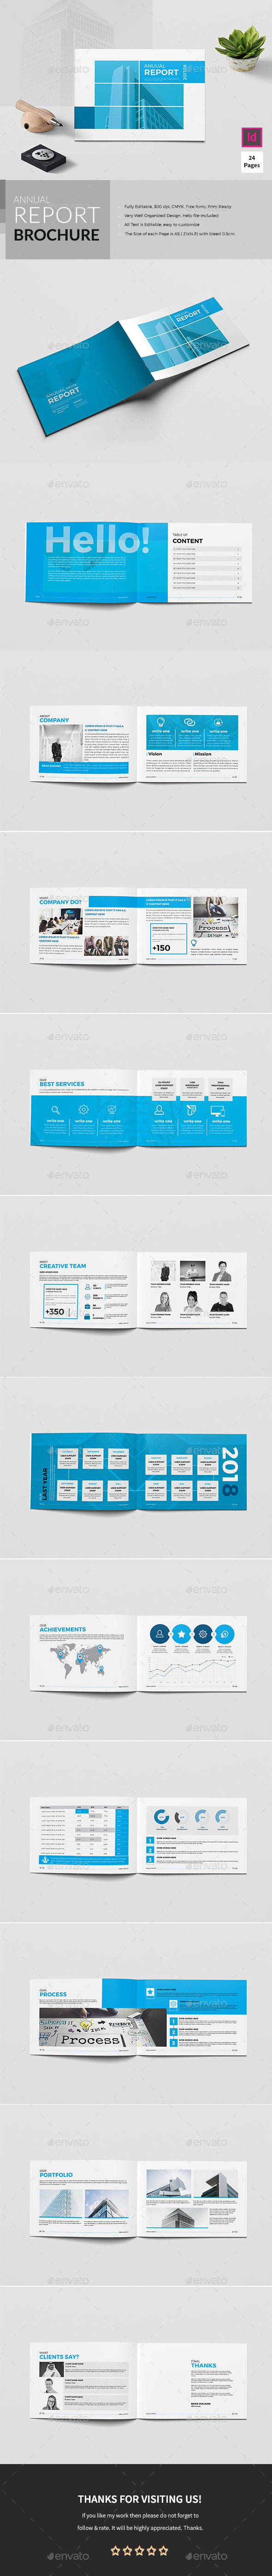 A5 Annual Report Brochure - Corporate Brochures